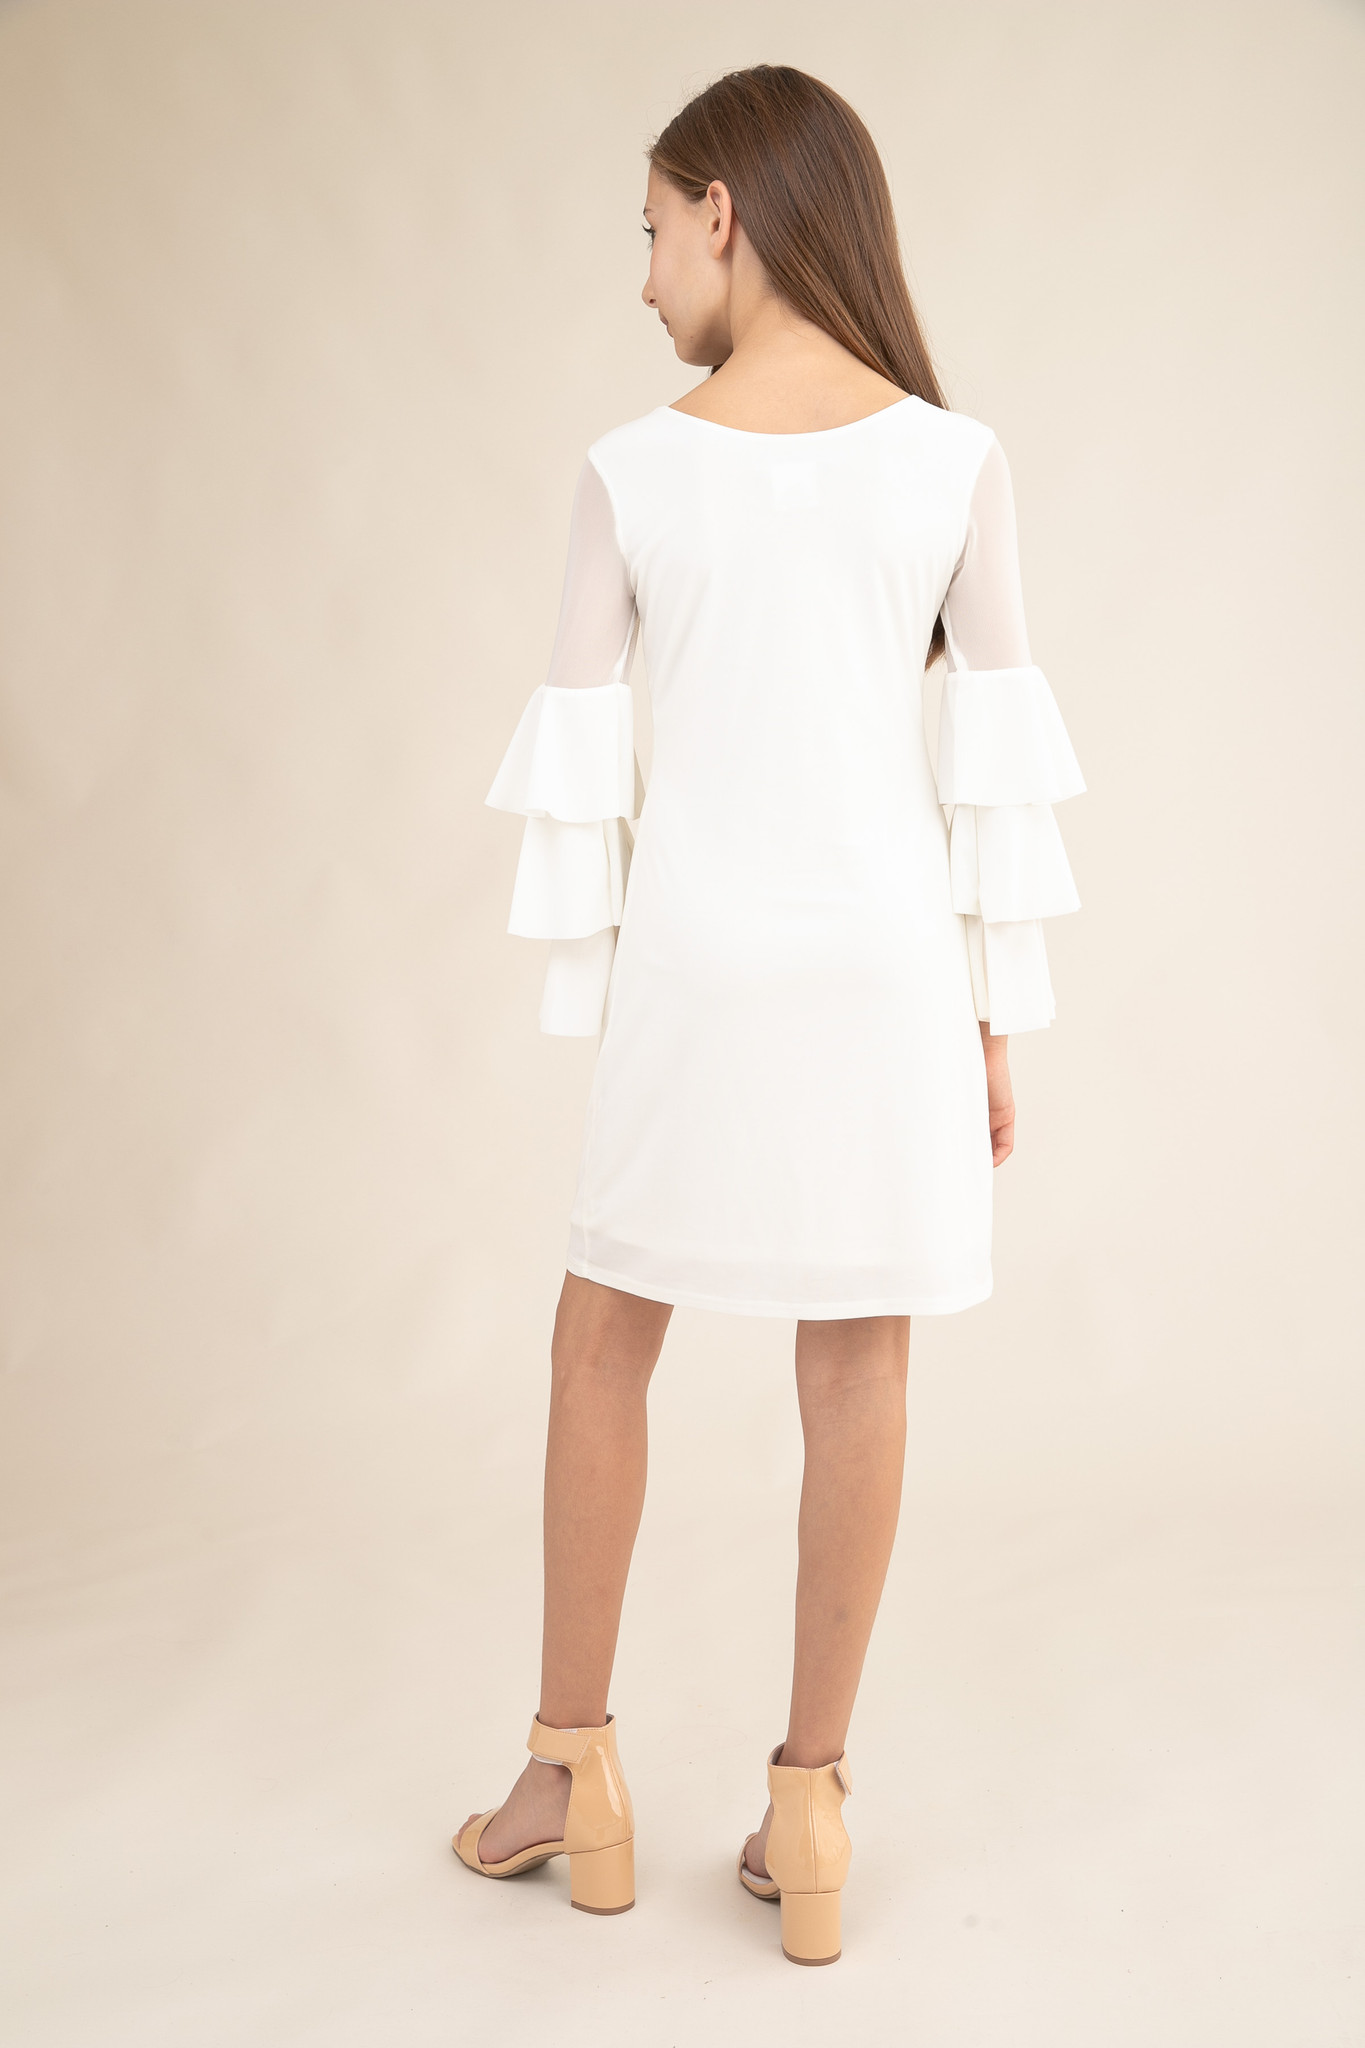 Tween Girls Ivory Fitted Bell Sleeve Dress in Longer Length back view.